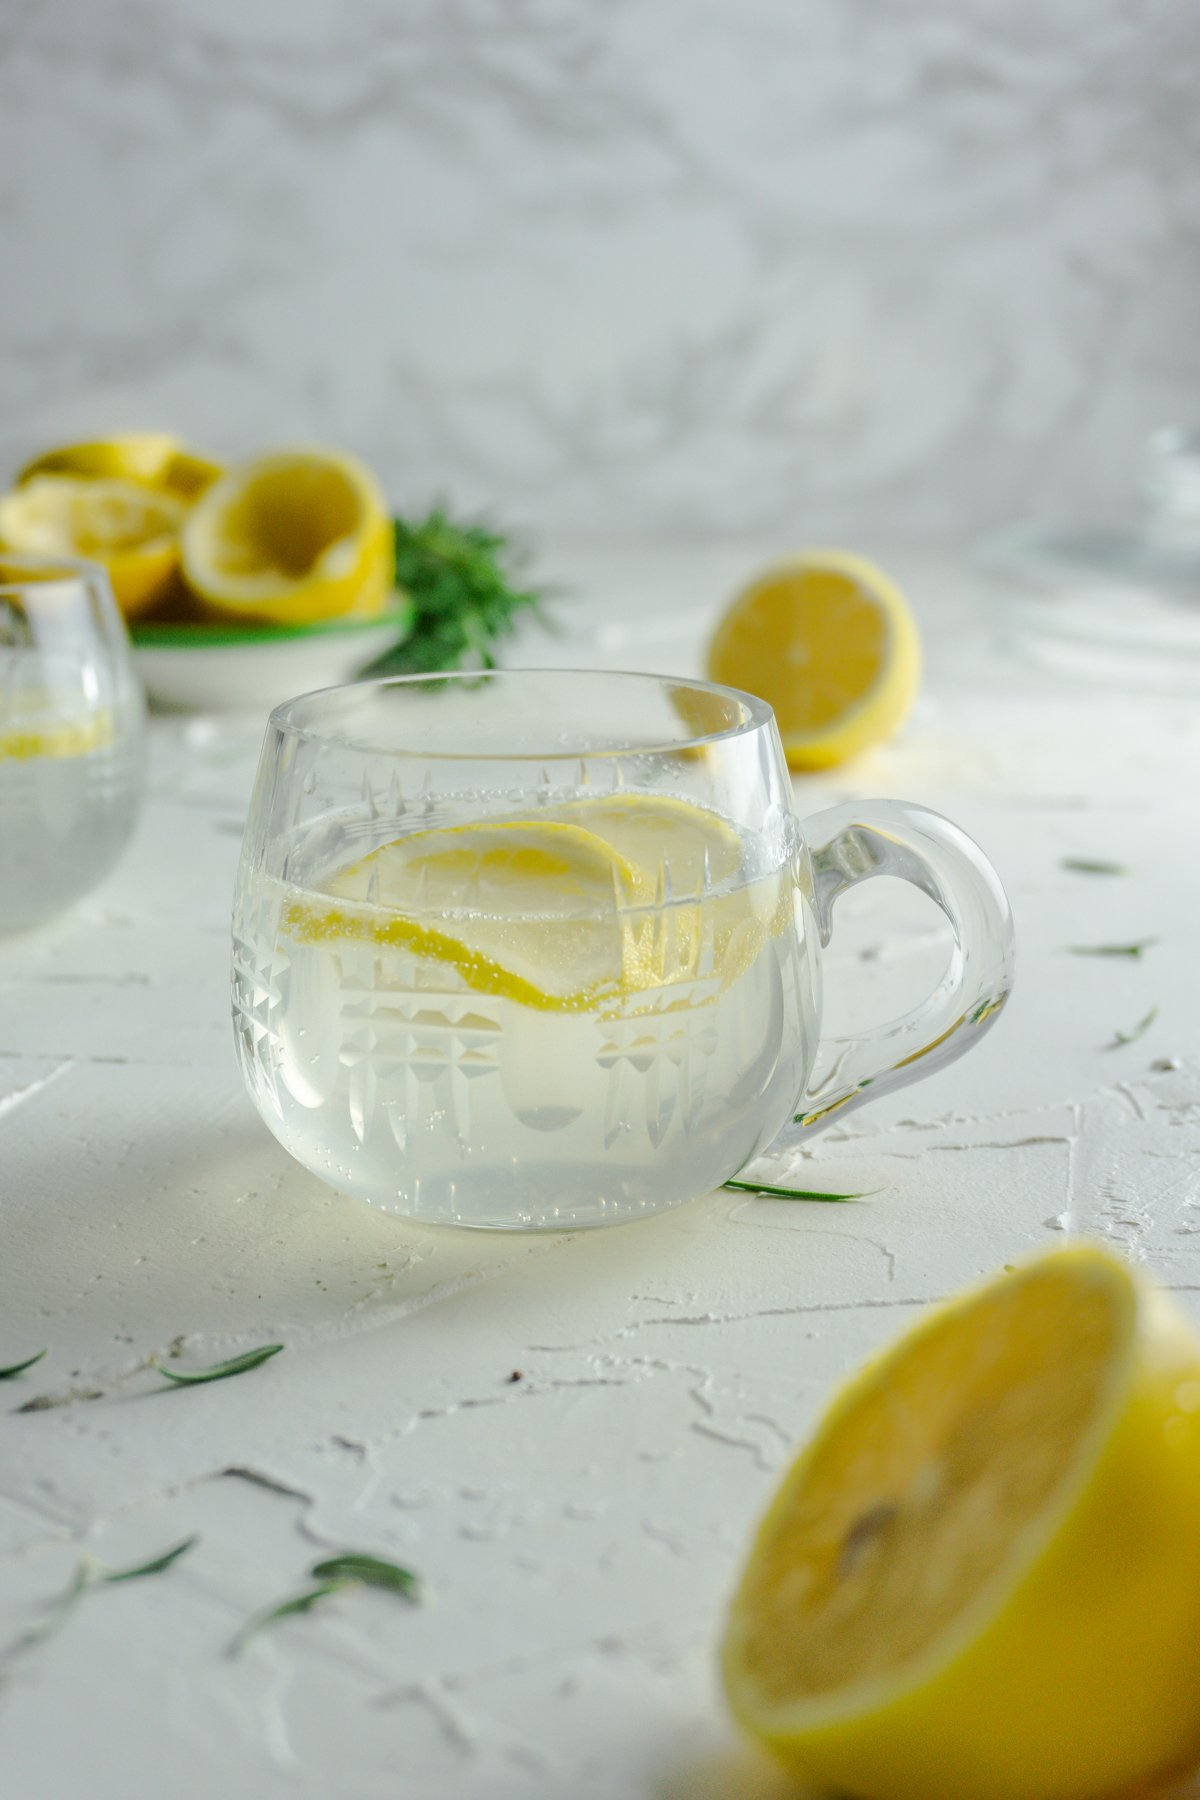 Small cup with Summer Day Lemonade on a white background with strewn rosemary and lemons